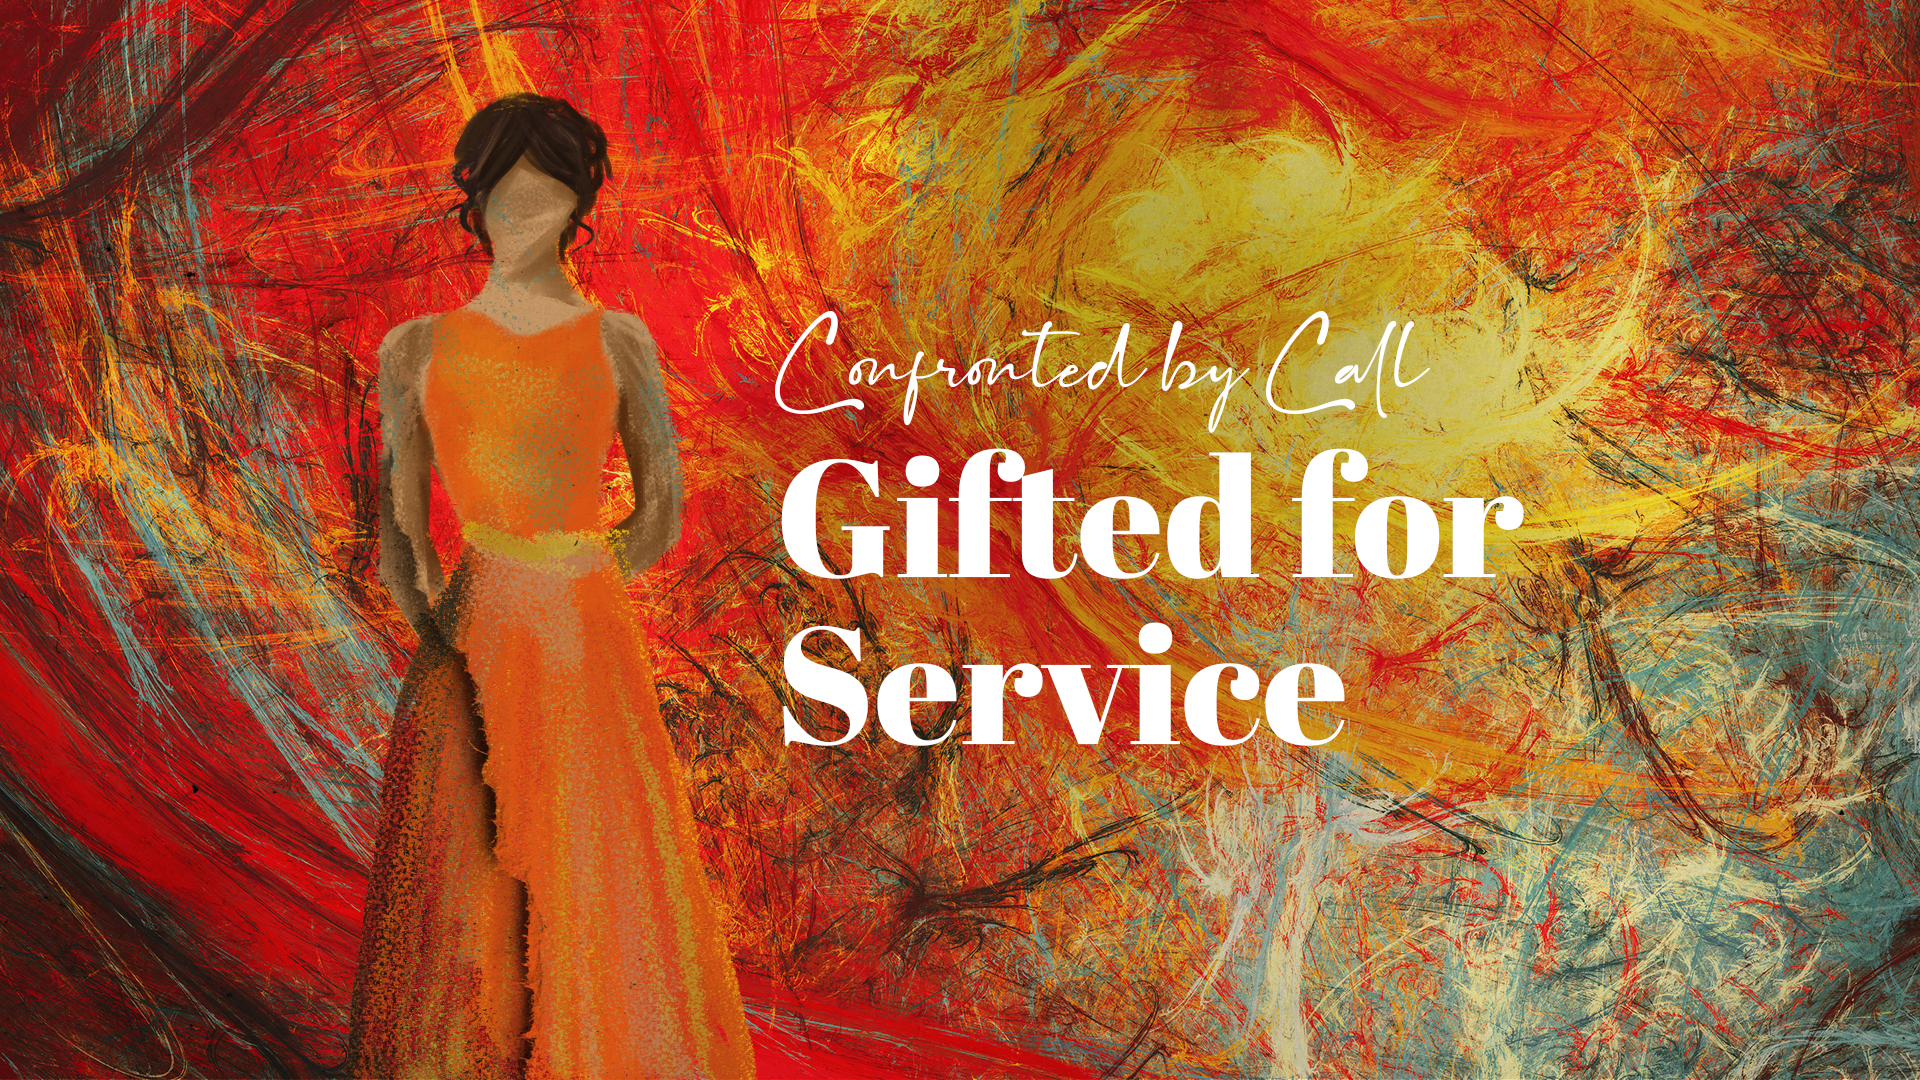 Confronted by Call Gifted for Service